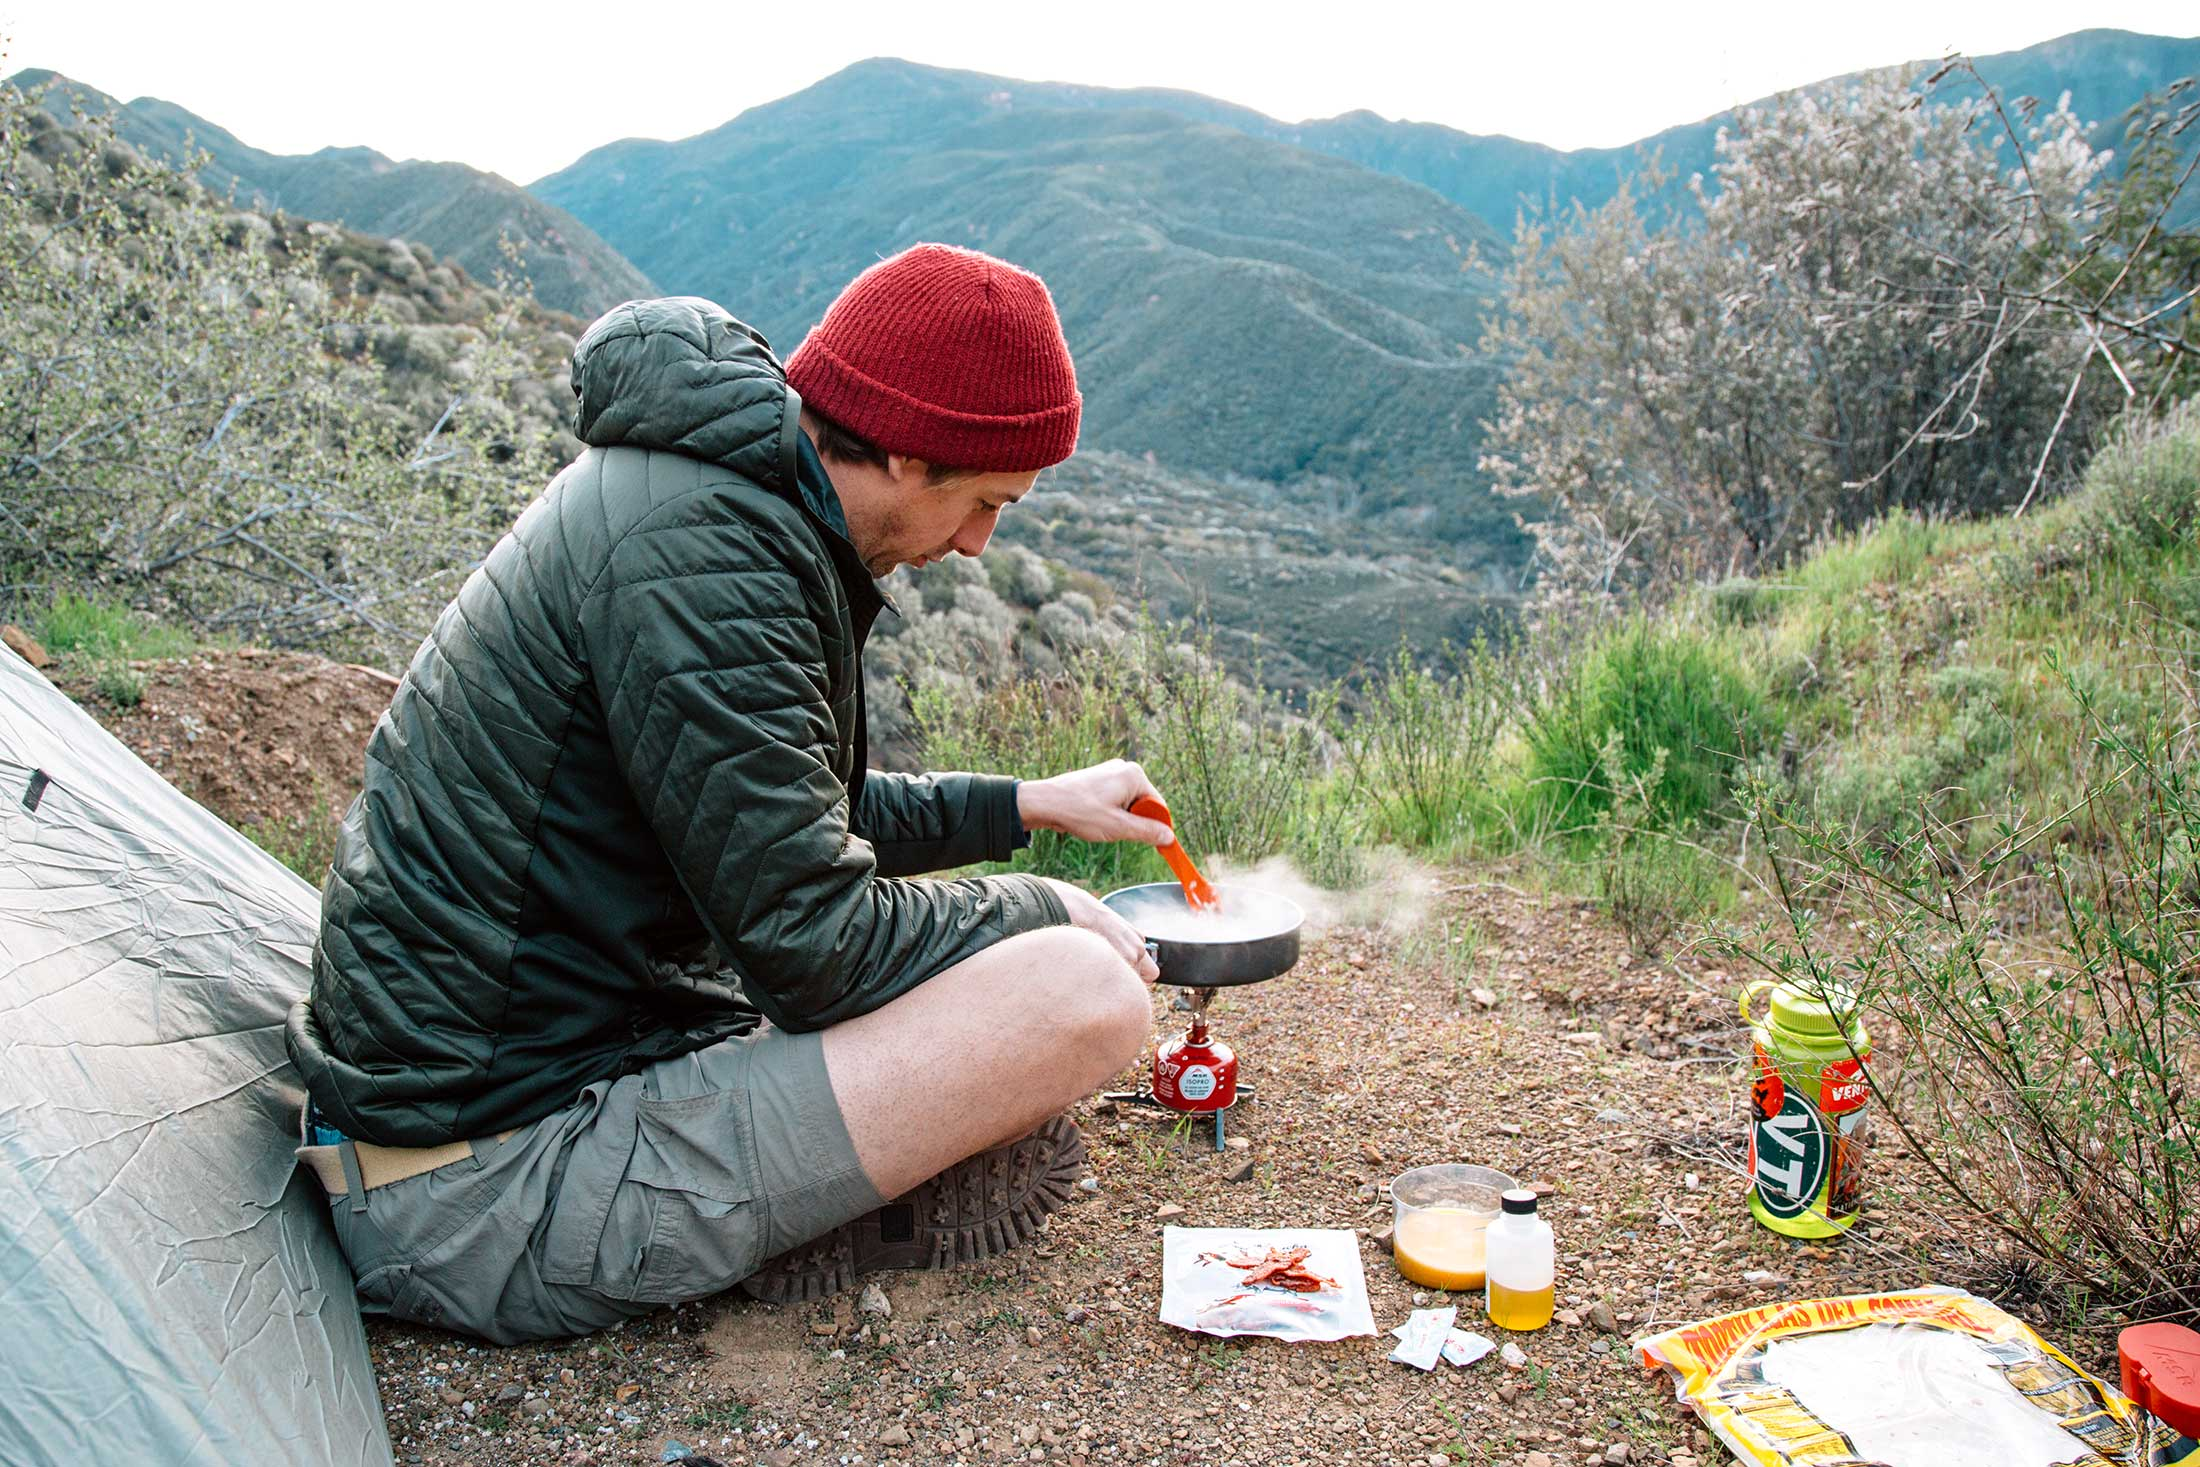 Scrambling eggs for the Backcountry Breakfast Burrito